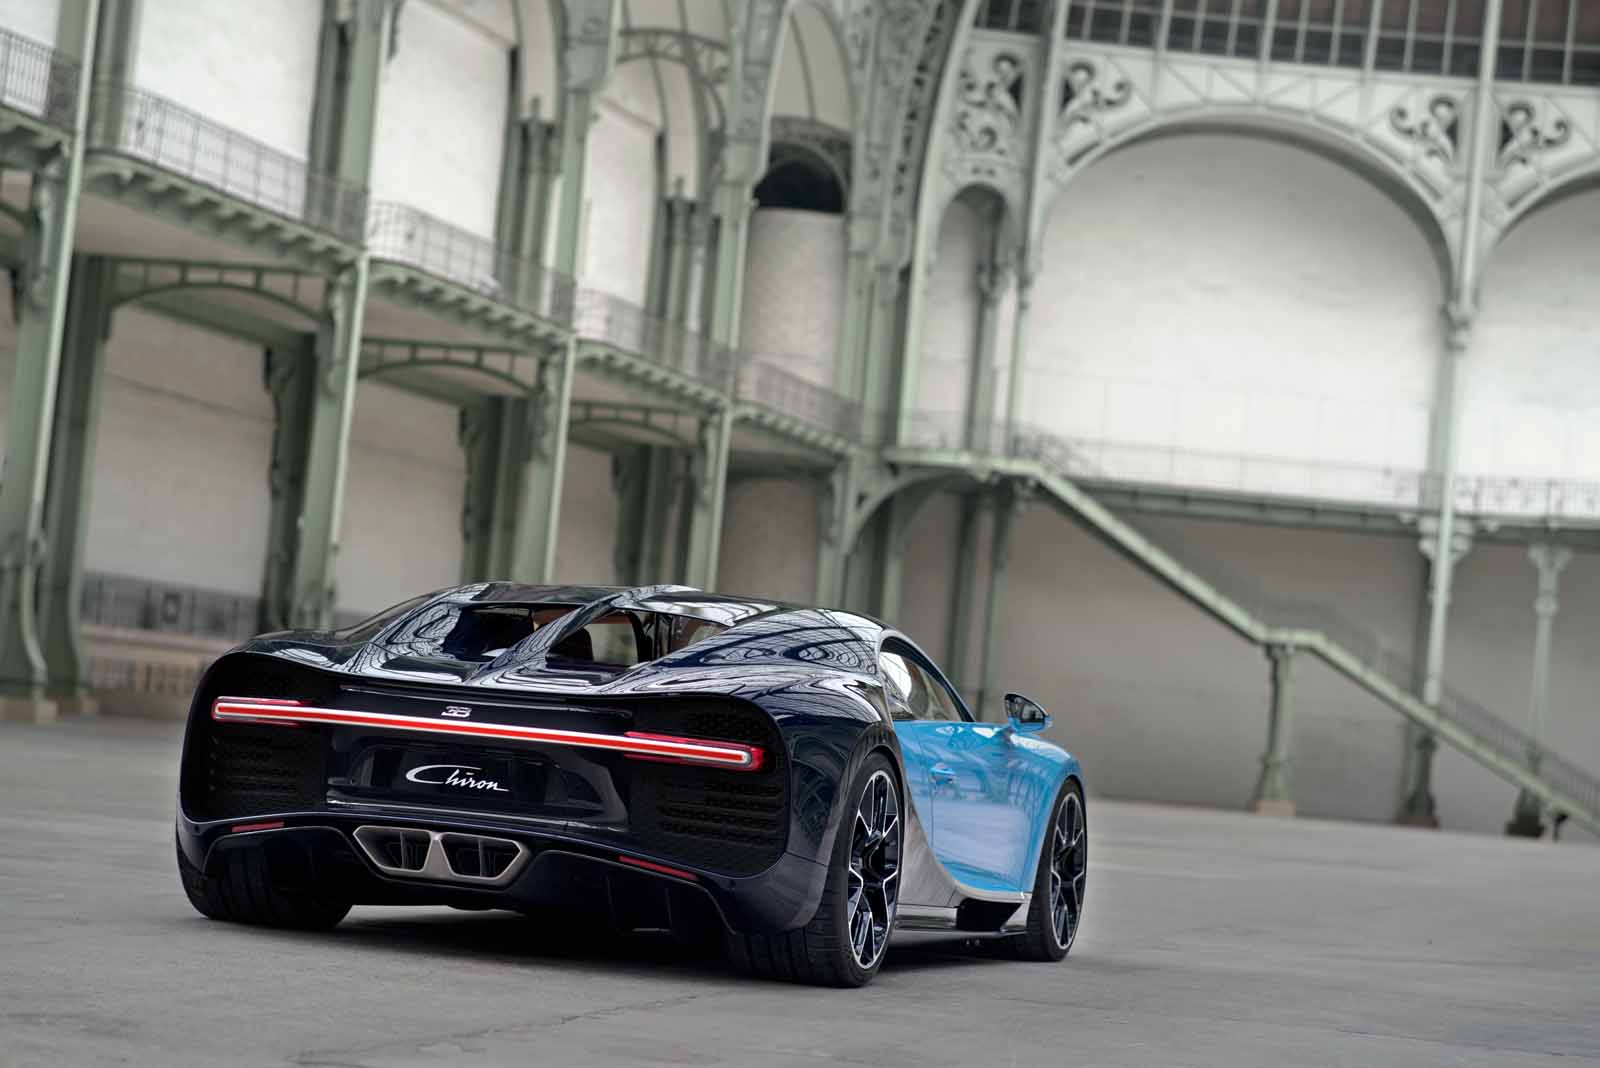 Bugatti Chiron Won't Get This Amazing Version Like the Veyron Did